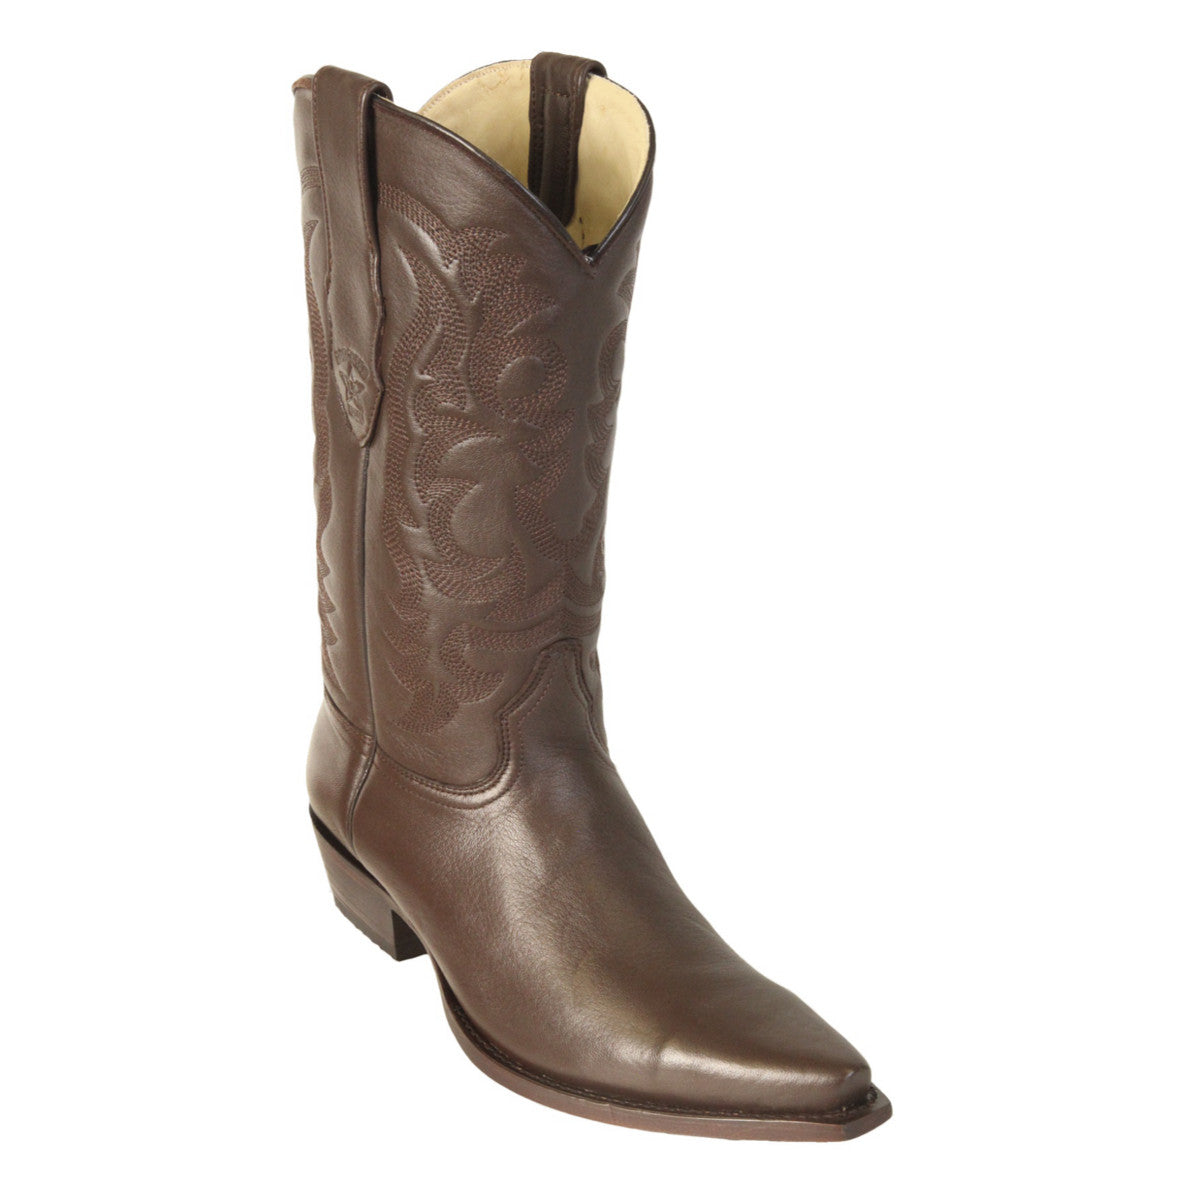 Los Altos Boots H94 Snip Toe Deer - Brown